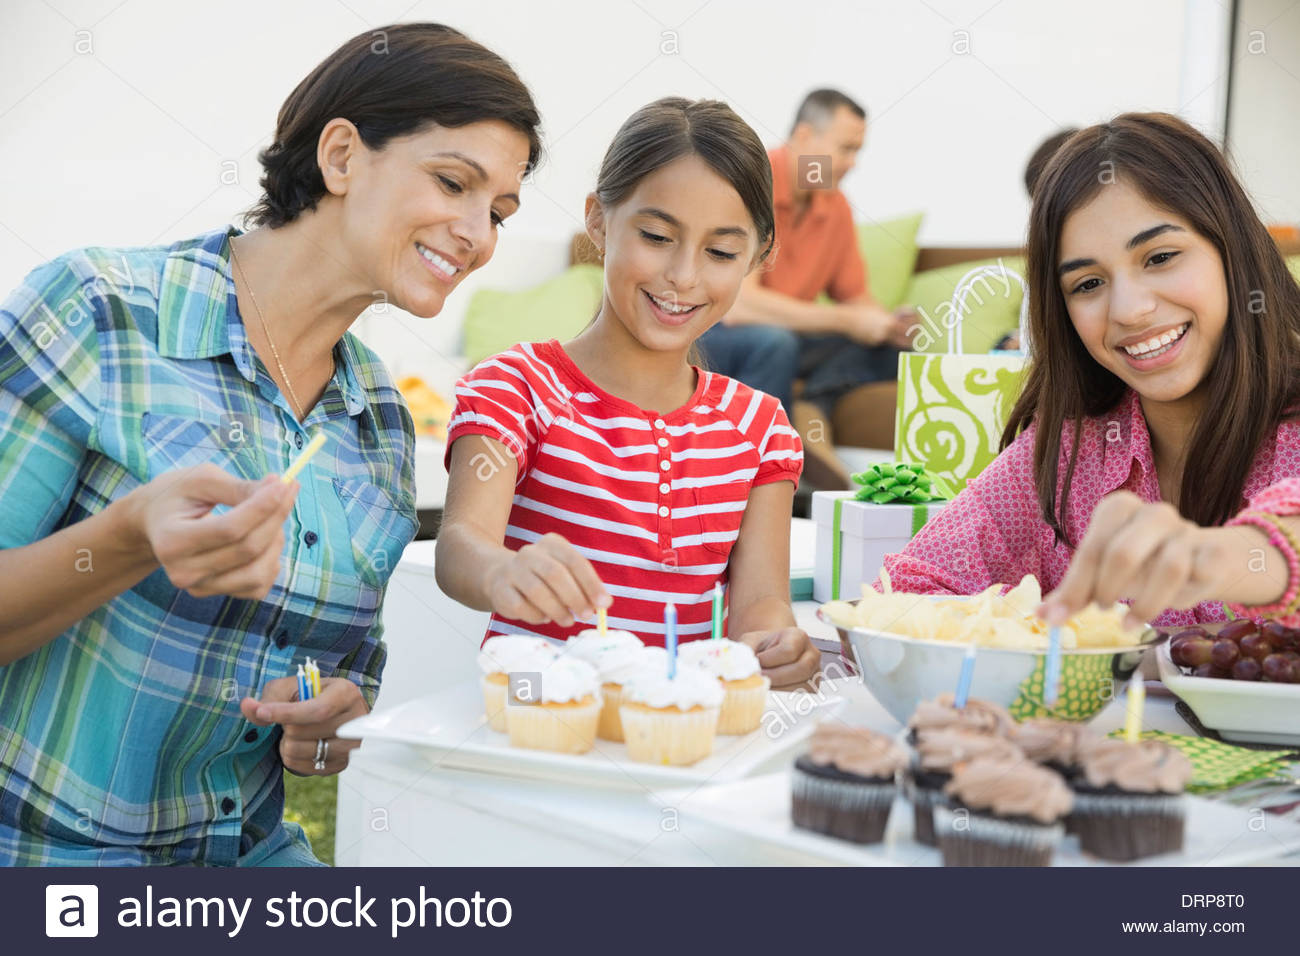 Mother and daughters placing candles in cupcakes - Stock Image